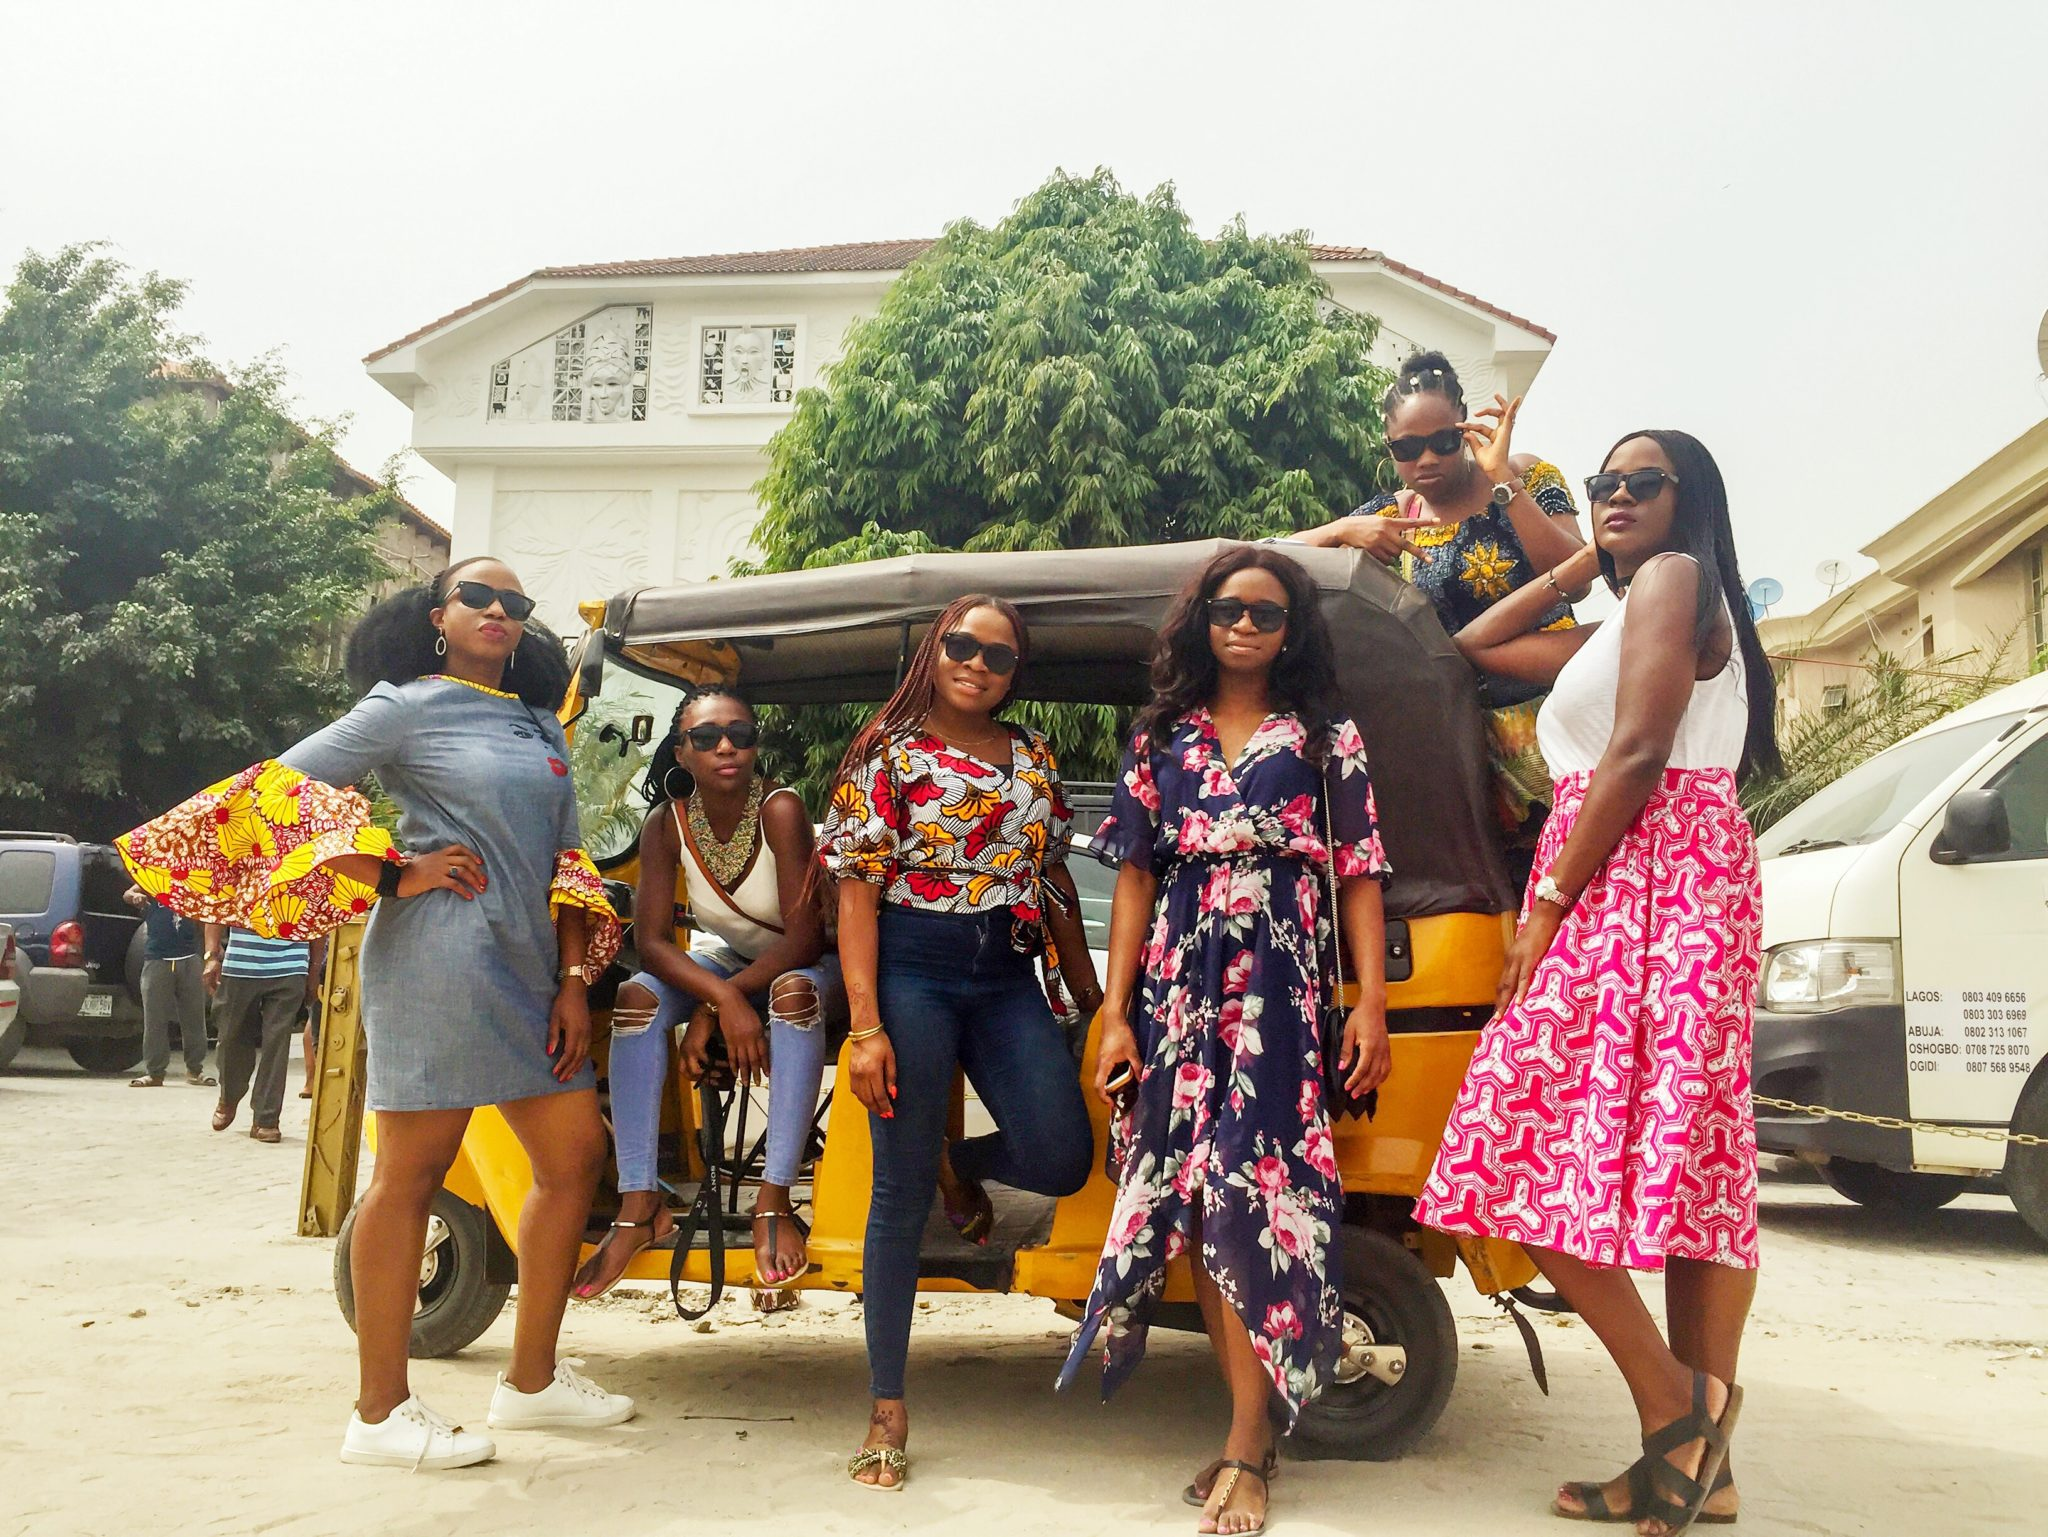 Empowerment through tourism - the spark youth empowerment platforms in nigeria